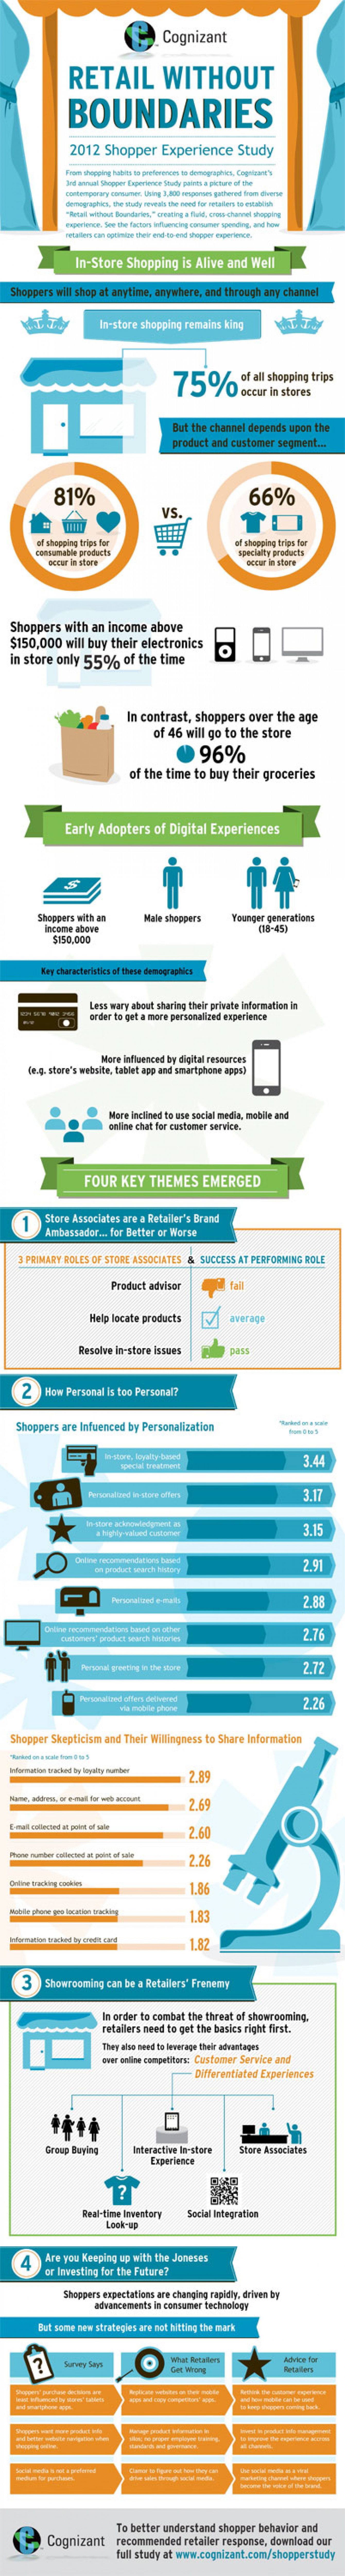 Retail Reorientation Infographic